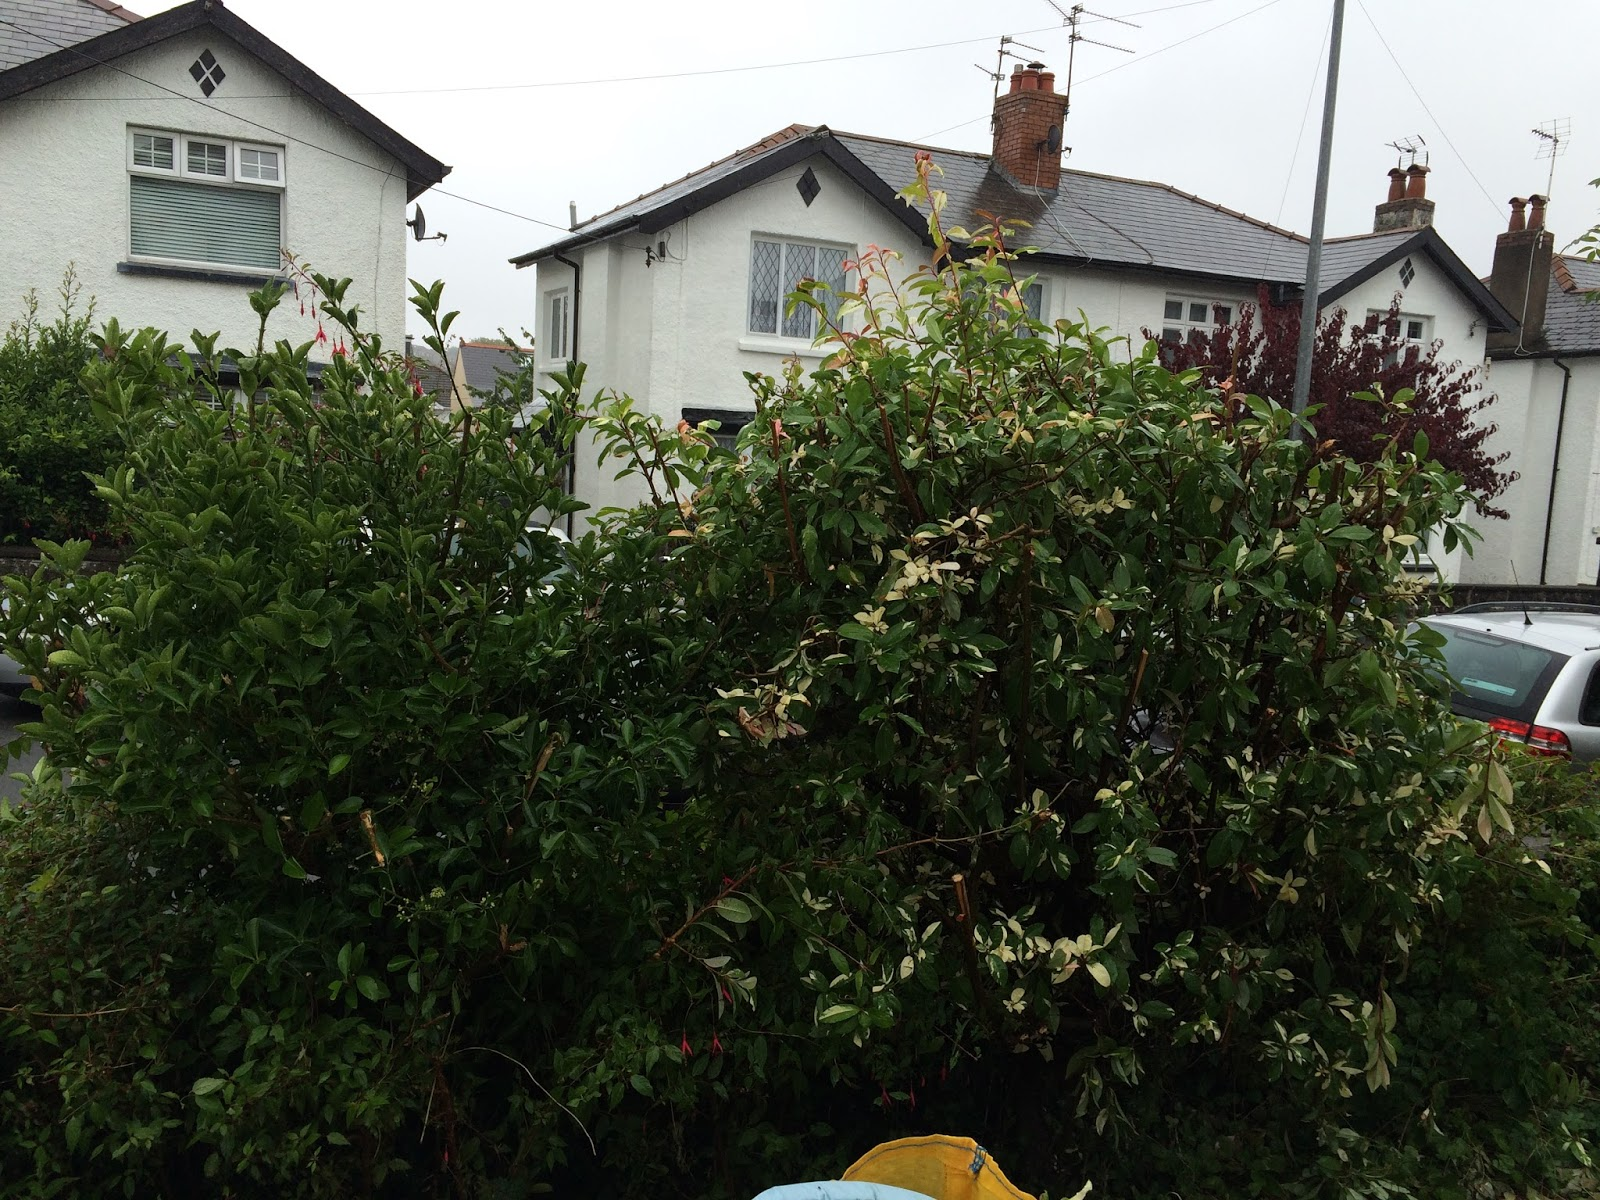 garden clean up - overgrown bushes at the front of the house